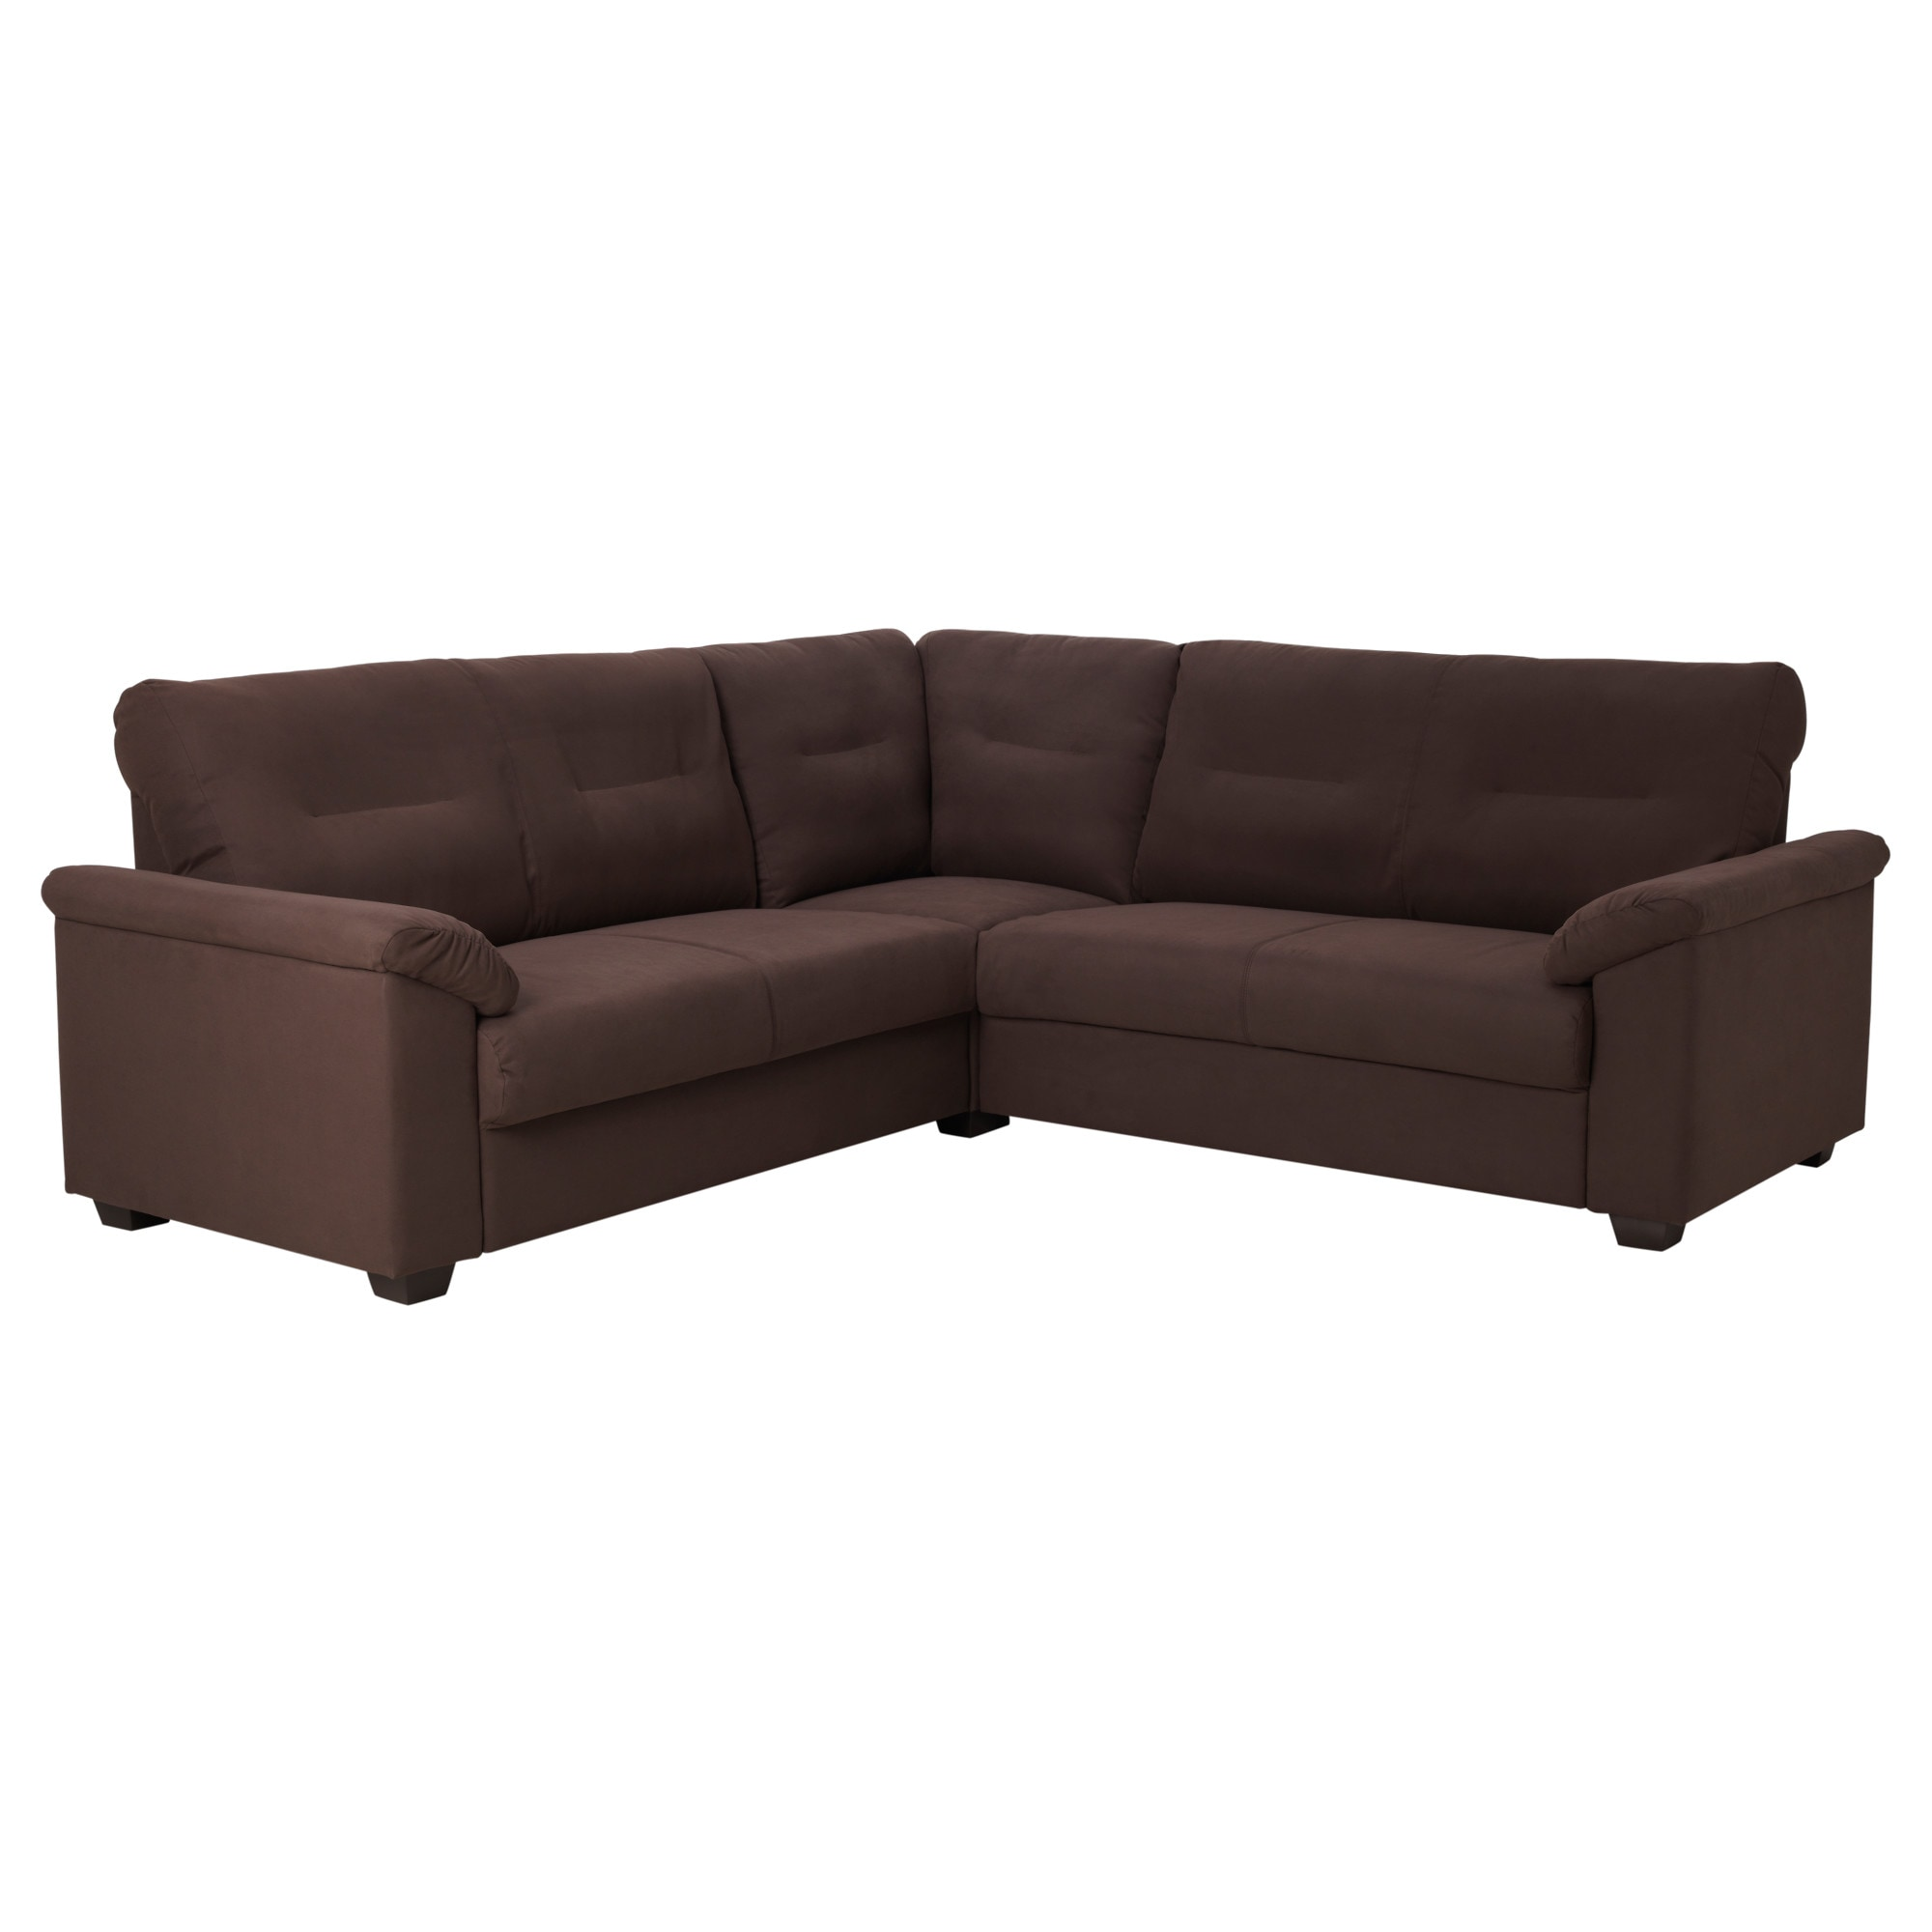 All sofas - IKEA